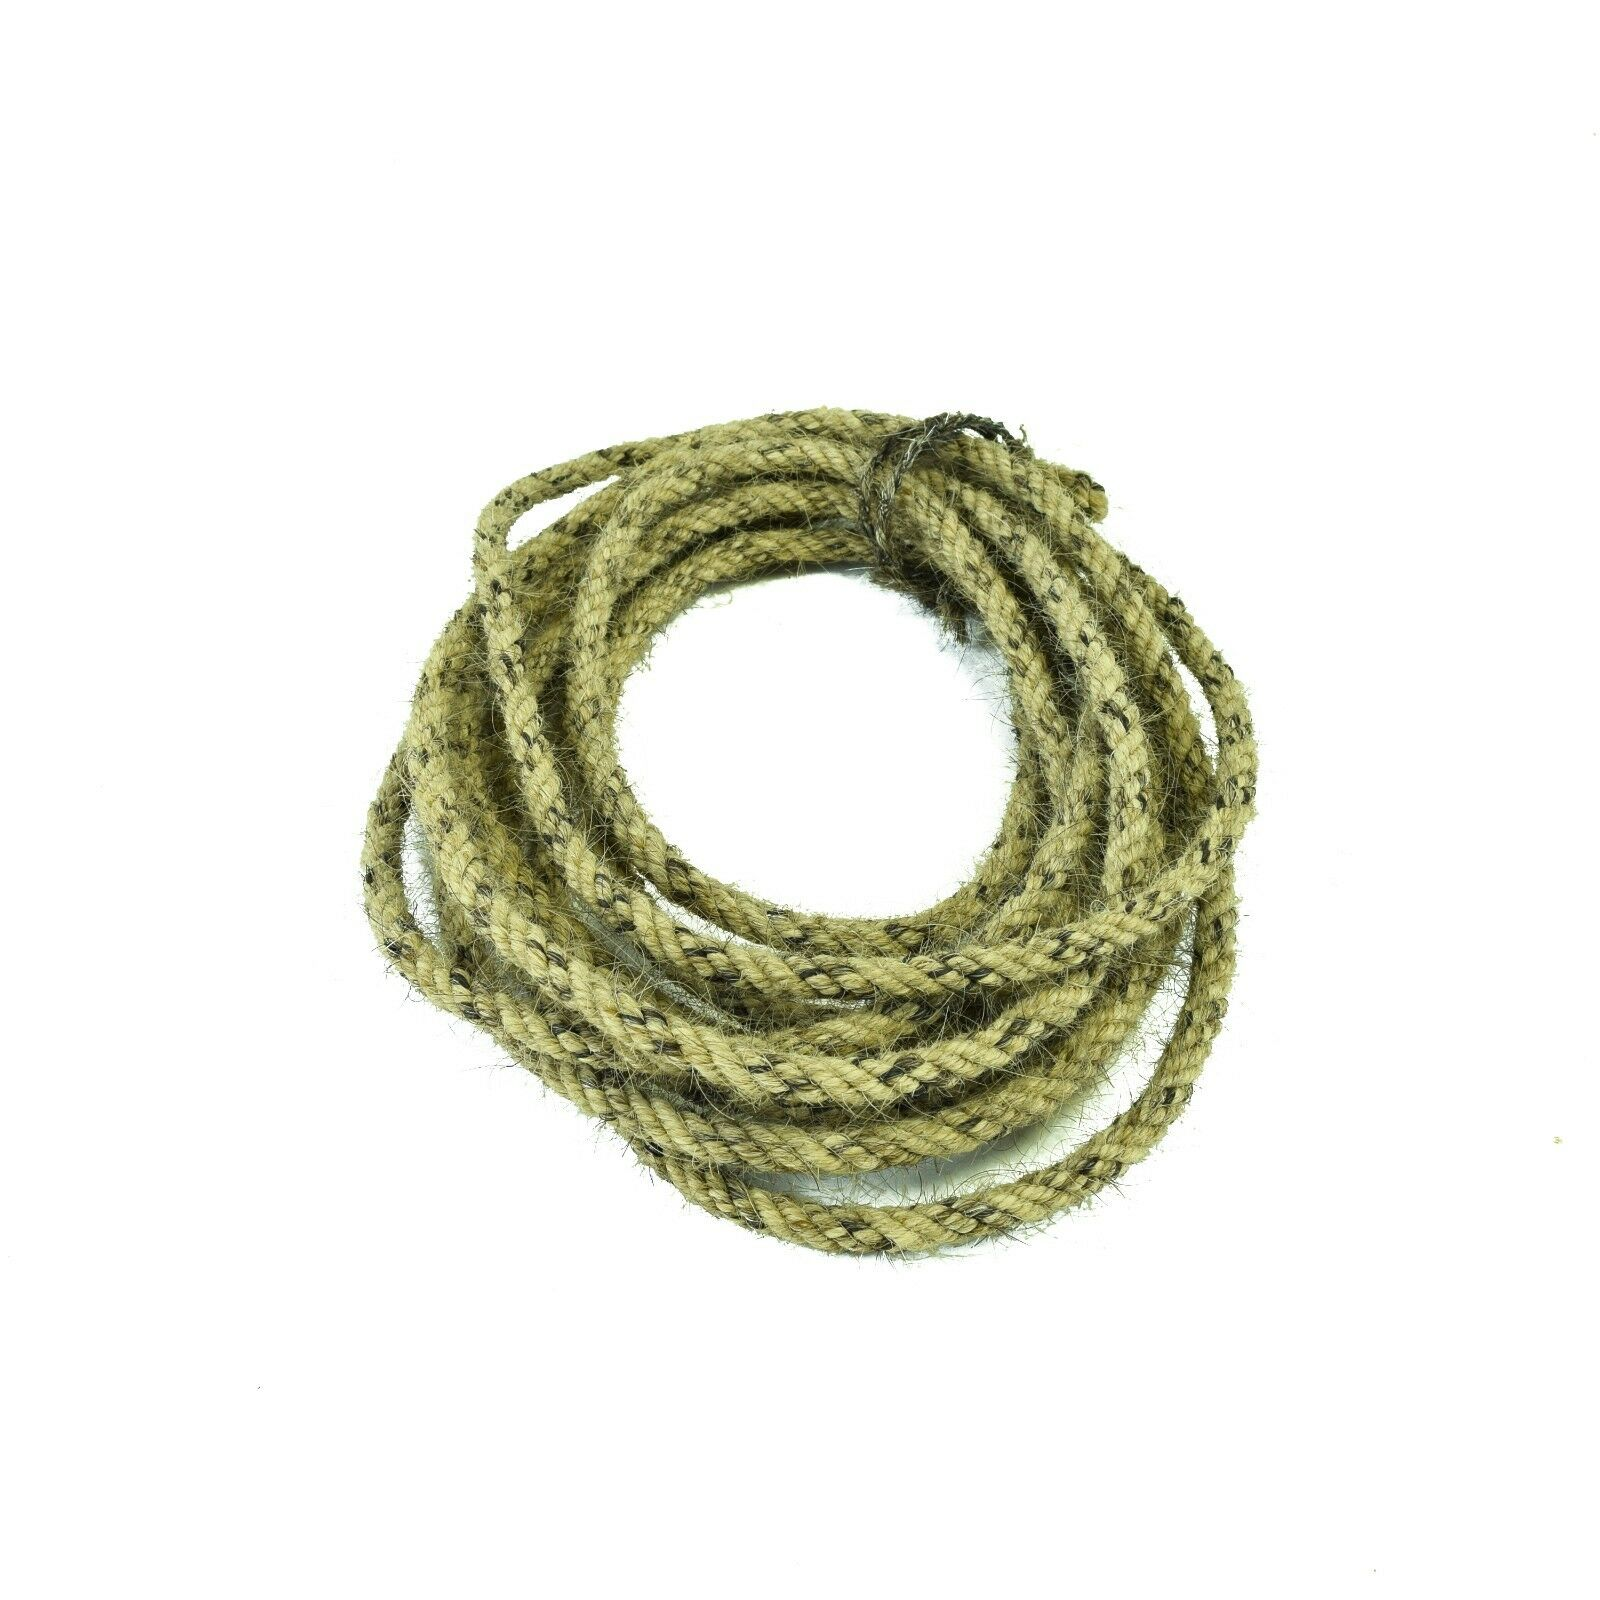 Mexican Braided Horsehair Rope  1920s  for wholesale